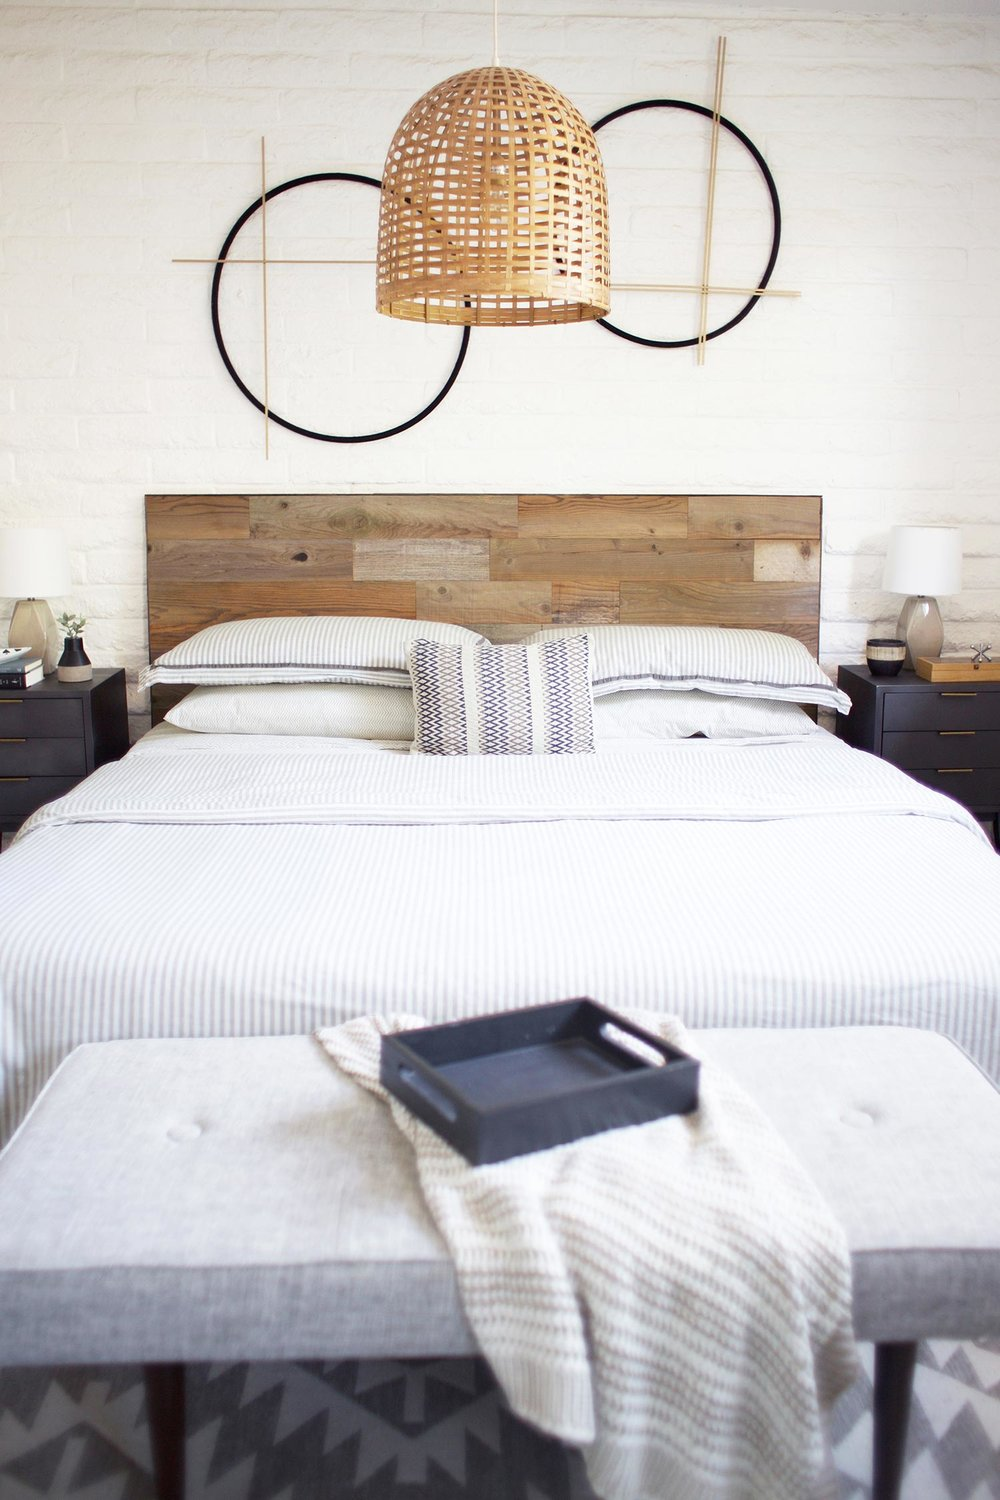 20 Minute Diy Reclaimed Wood Headboard Kristi Murphy Diy Blog